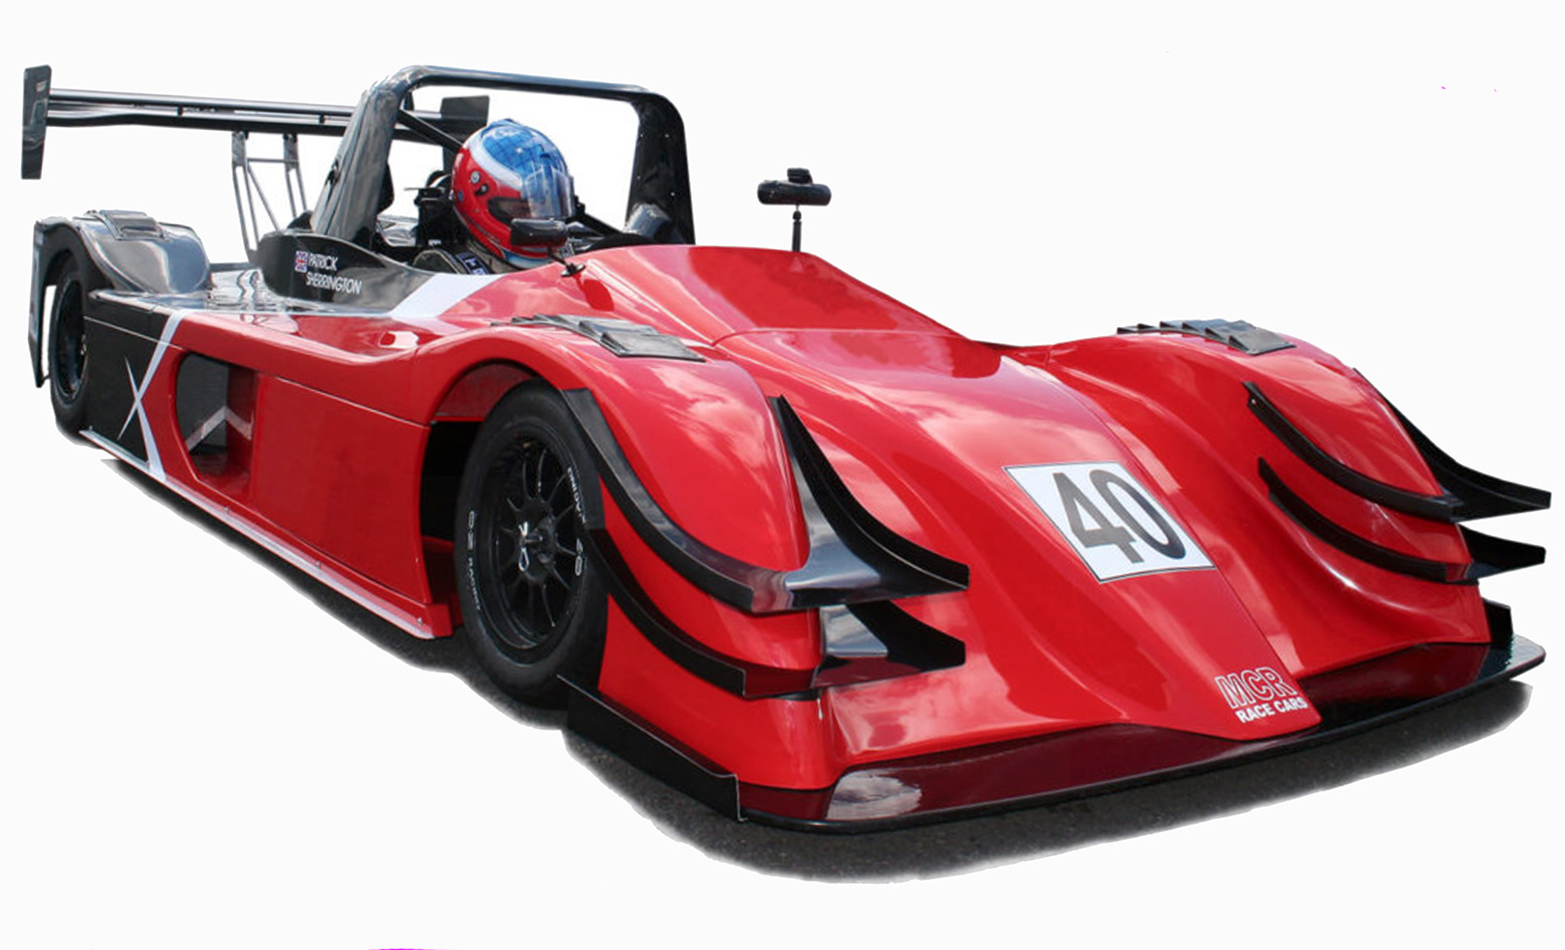 MCR Race Cars sports prototype